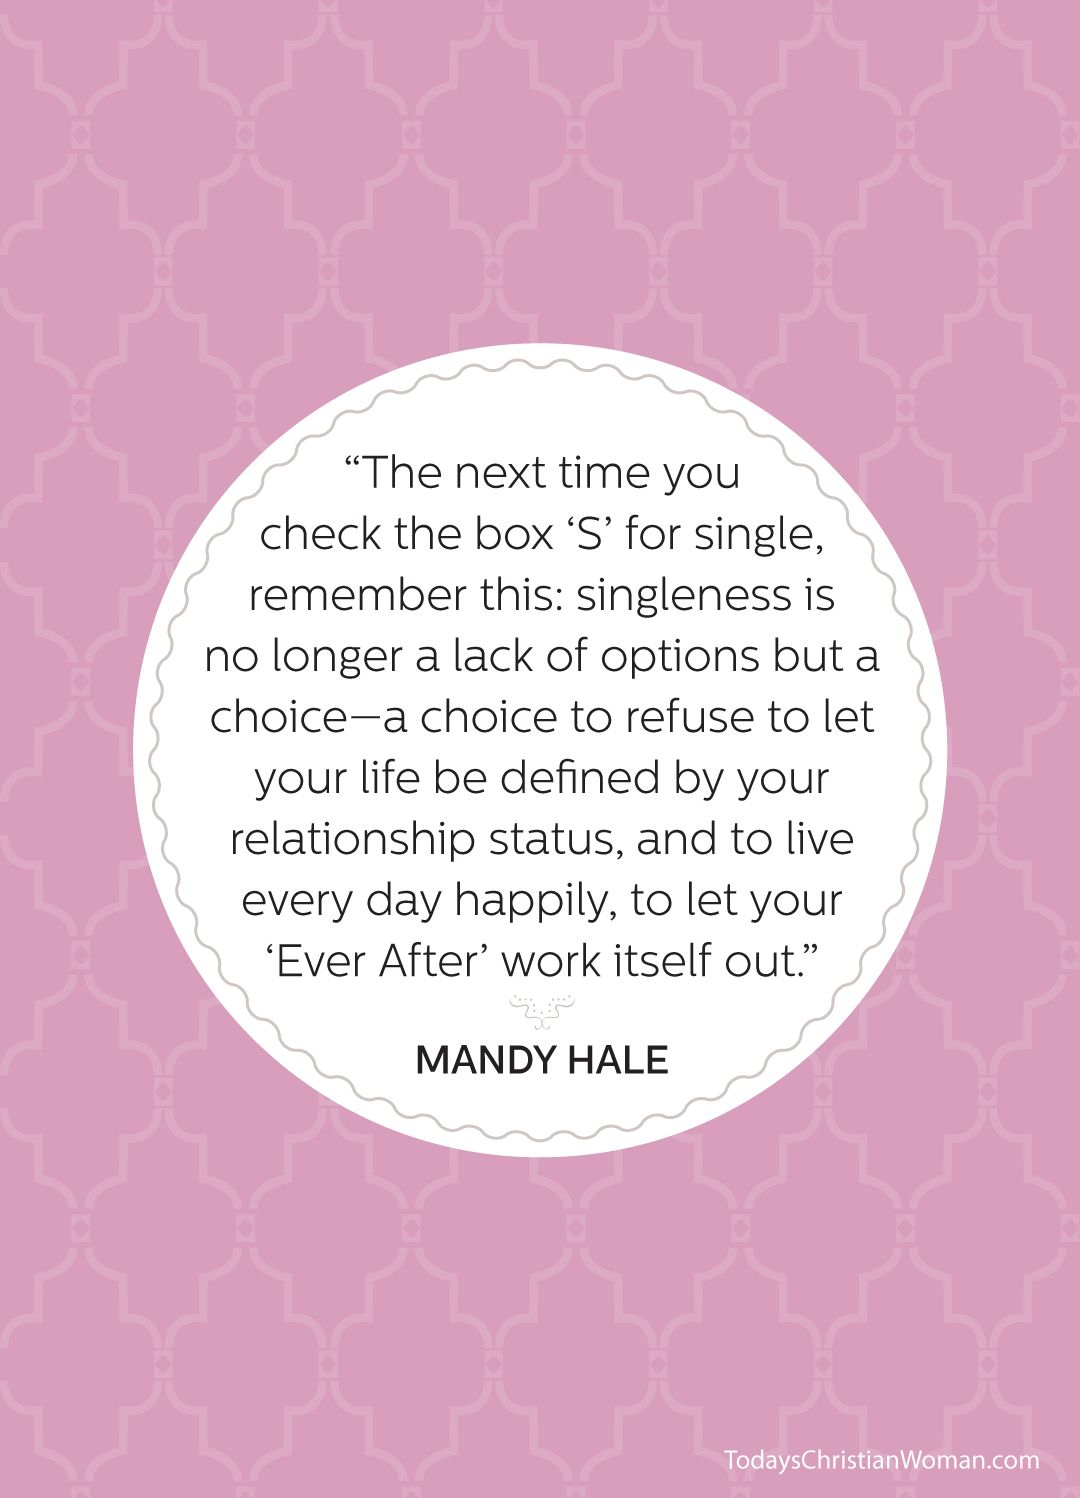 Singleness is no longer a lack of options but a choice singleness is no longer a lack of options but a choice thesinglewoman fandeluxe Image collections